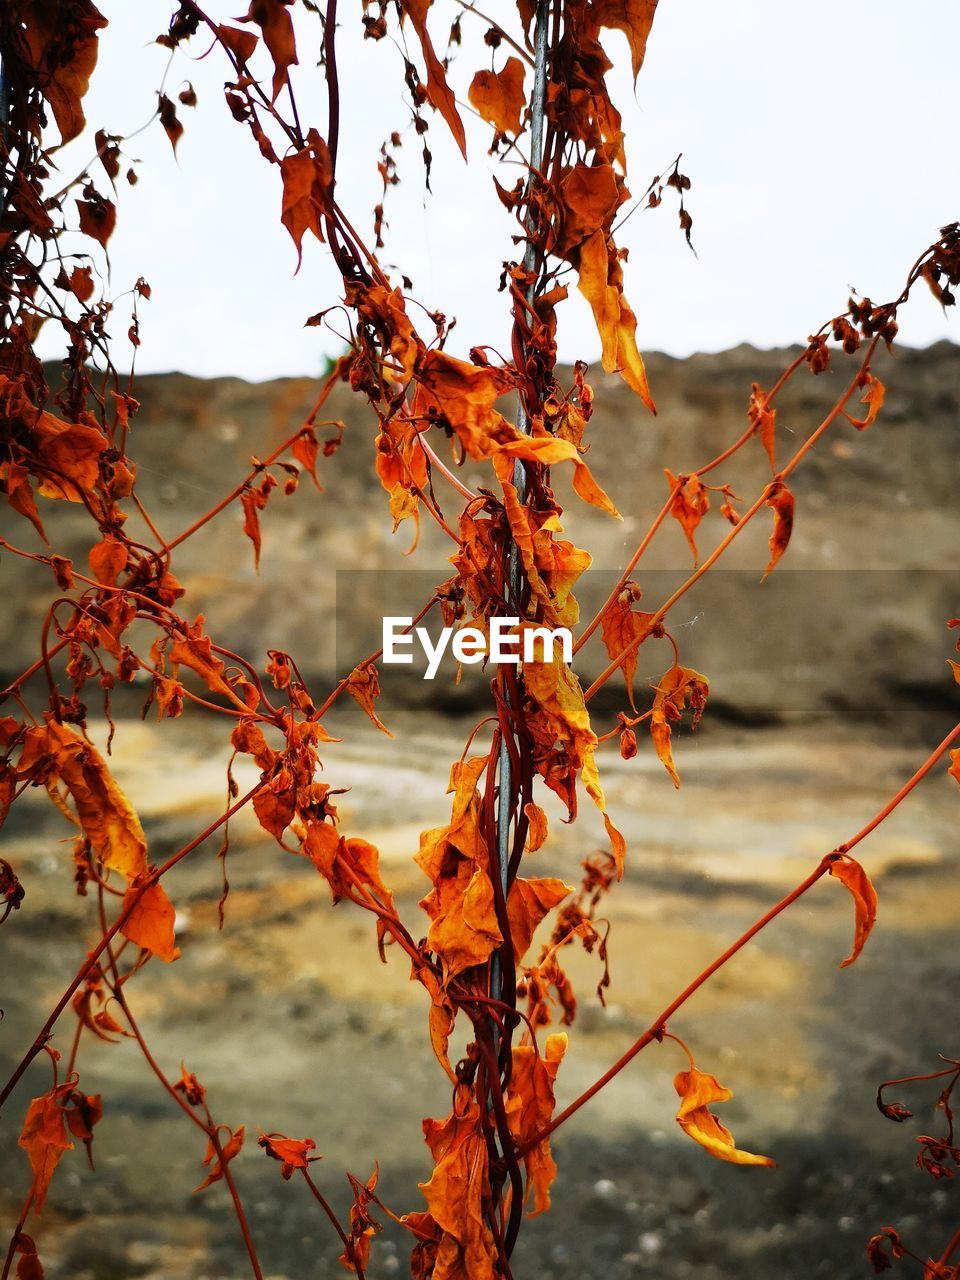 plant, change, leaf, autumn, plant part, orange color, growth, beauty in nature, nature, no people, tree, focus on foreground, branch, day, outdoors, red, close-up, leaves, food, sky, maple leaf, autumn collection, natural condition